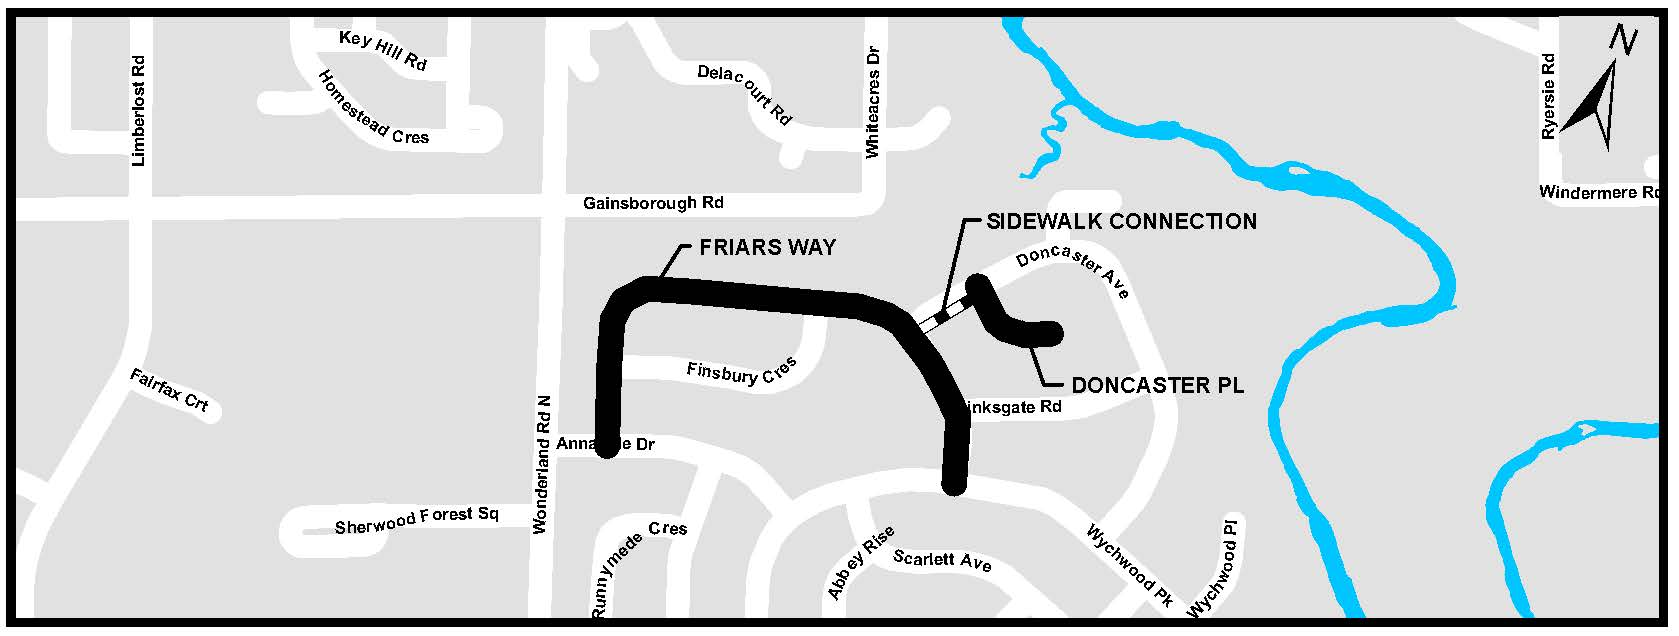 A map of Friars Way and Doncaster Place. For more information, assistance, or to ask questions, please contact Kyle Fairhurst at kfairhur@london.ca